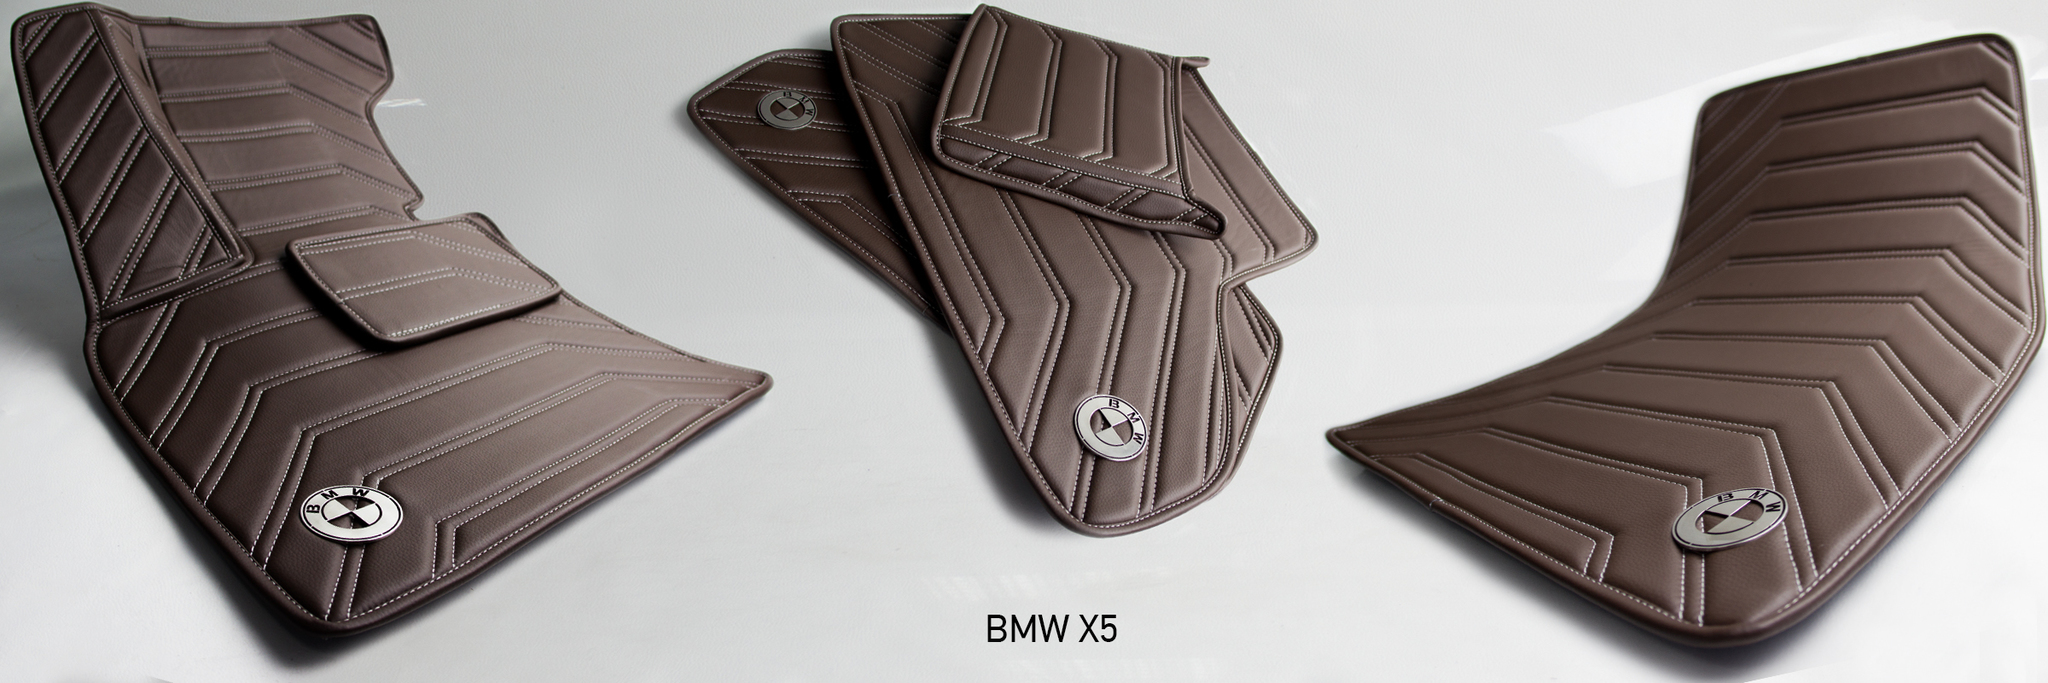 images-products-1-7885-232988365-BMW_X5_c.jpg